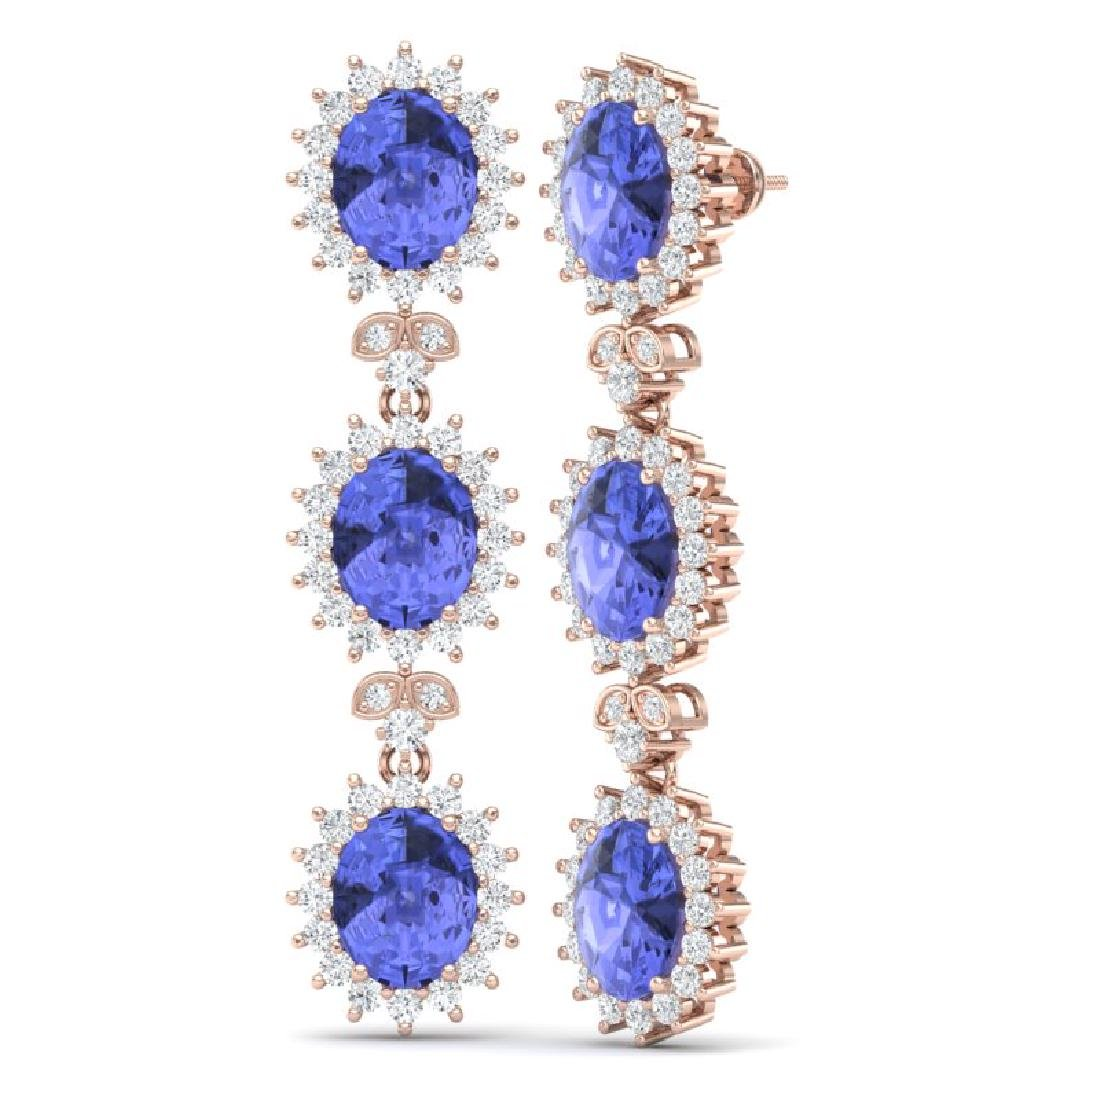 25.36 CTW Royalty Tanzanite & VS Diamond Earrings 18K - 3